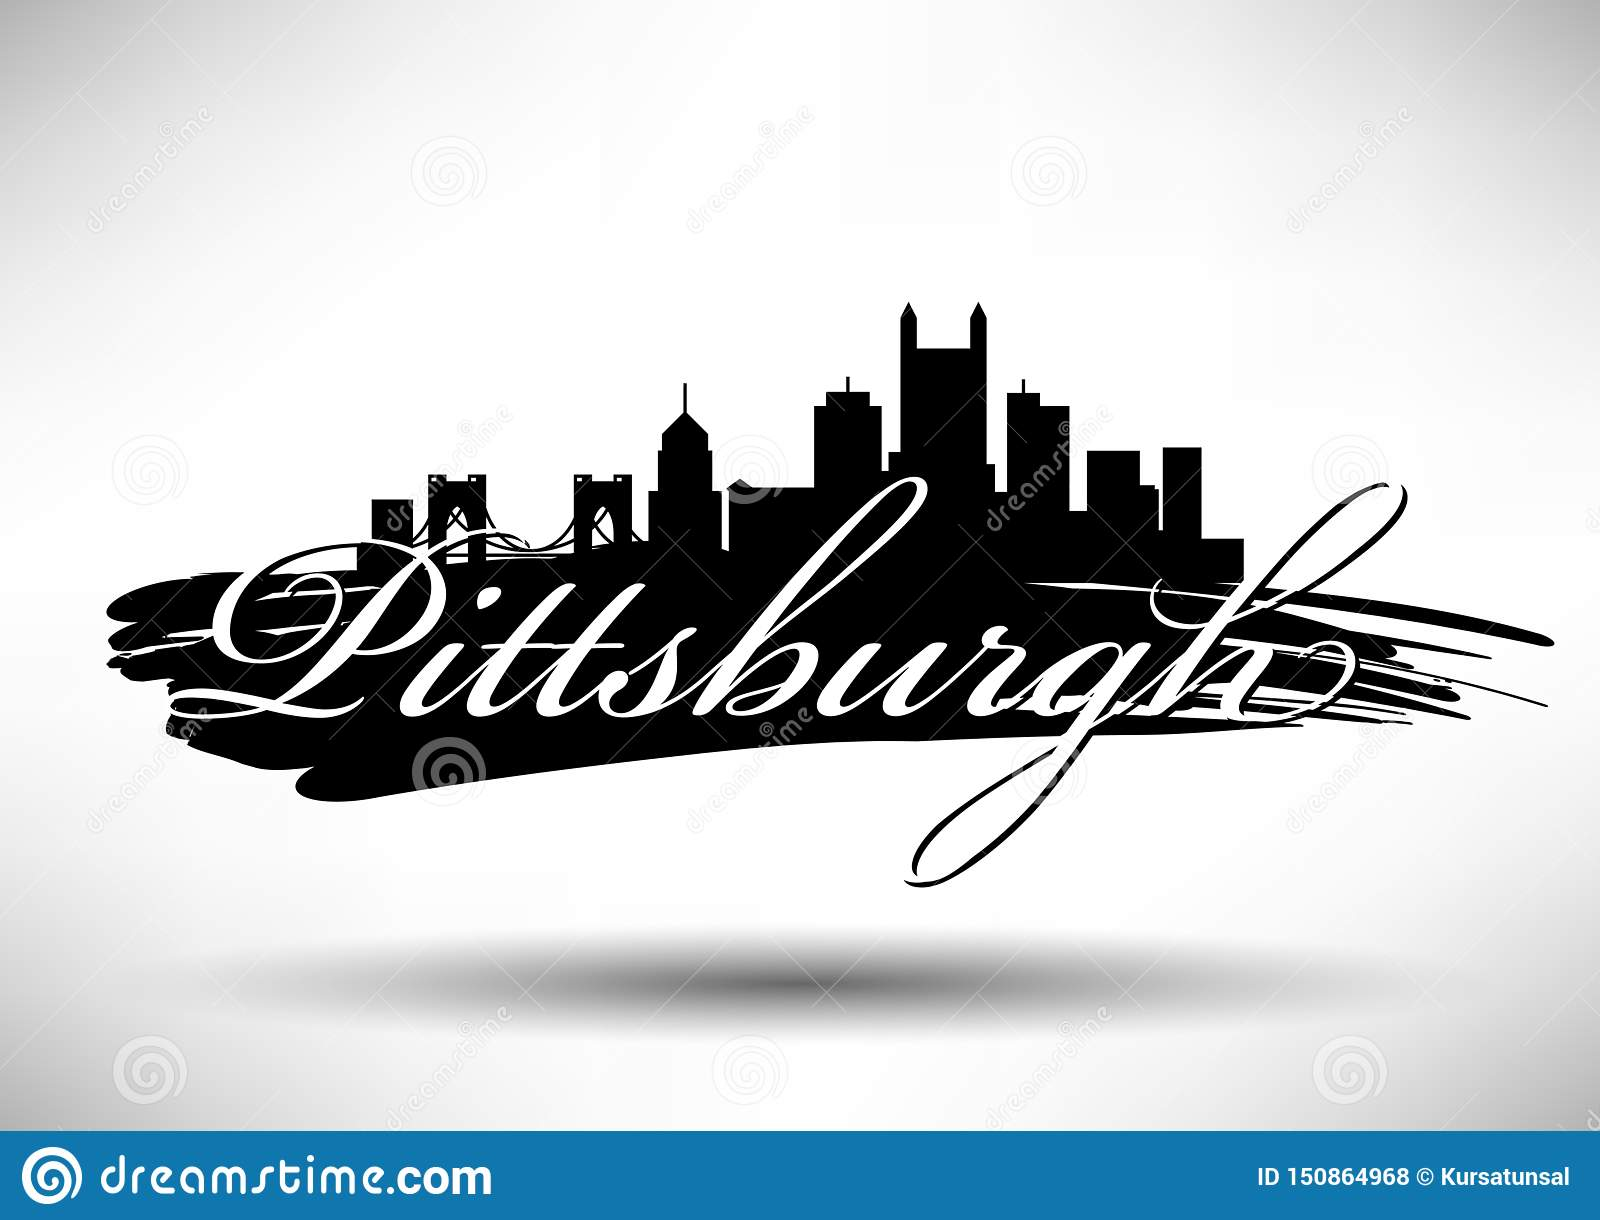 Vector Graphic Design Of Pittsburgh City Skyline Stock Vector Illustration Of Design Banner 150864968,Simple Blouse Designs Front And Back Images